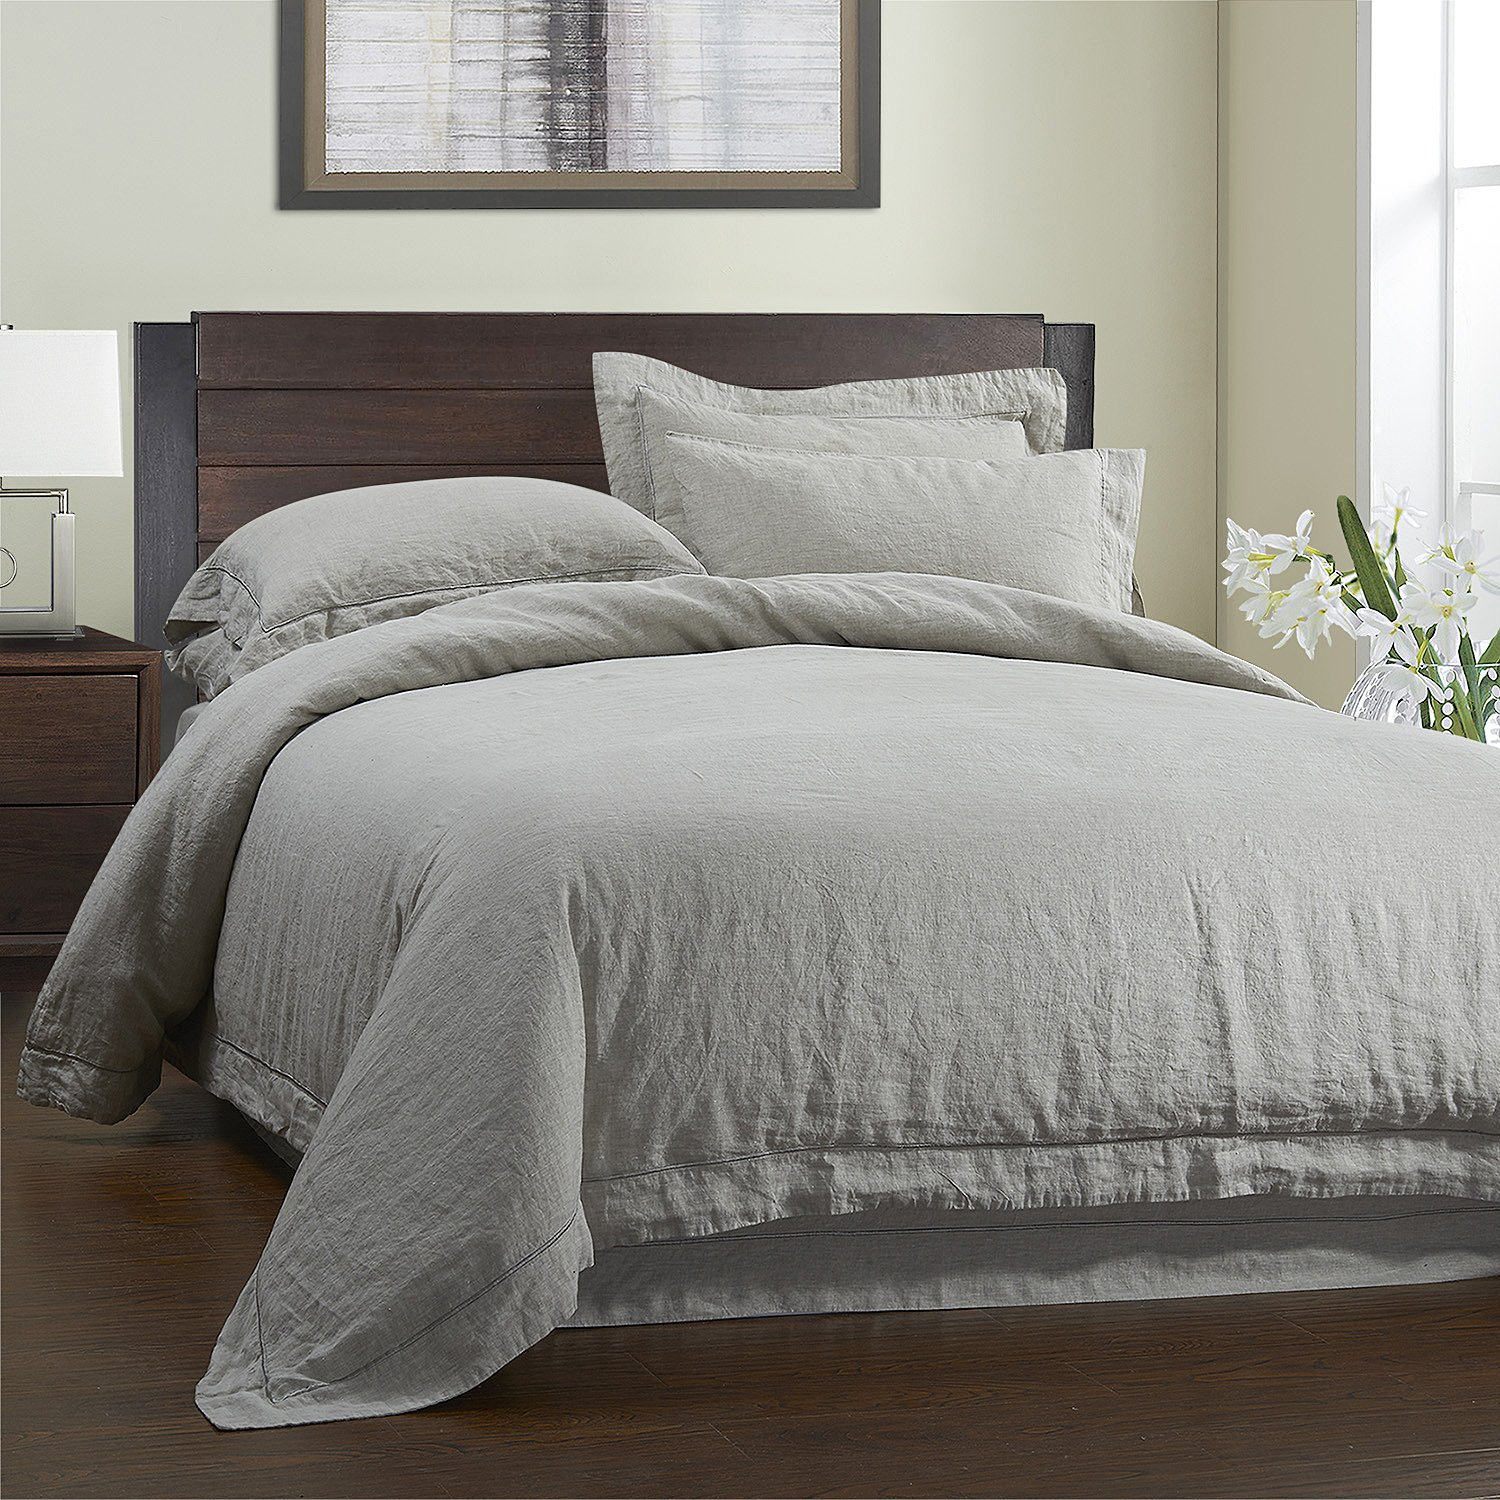 Simple&Opulence 3 Piece Solid 100% Linen Duvet Cover Set (Full, Grey)